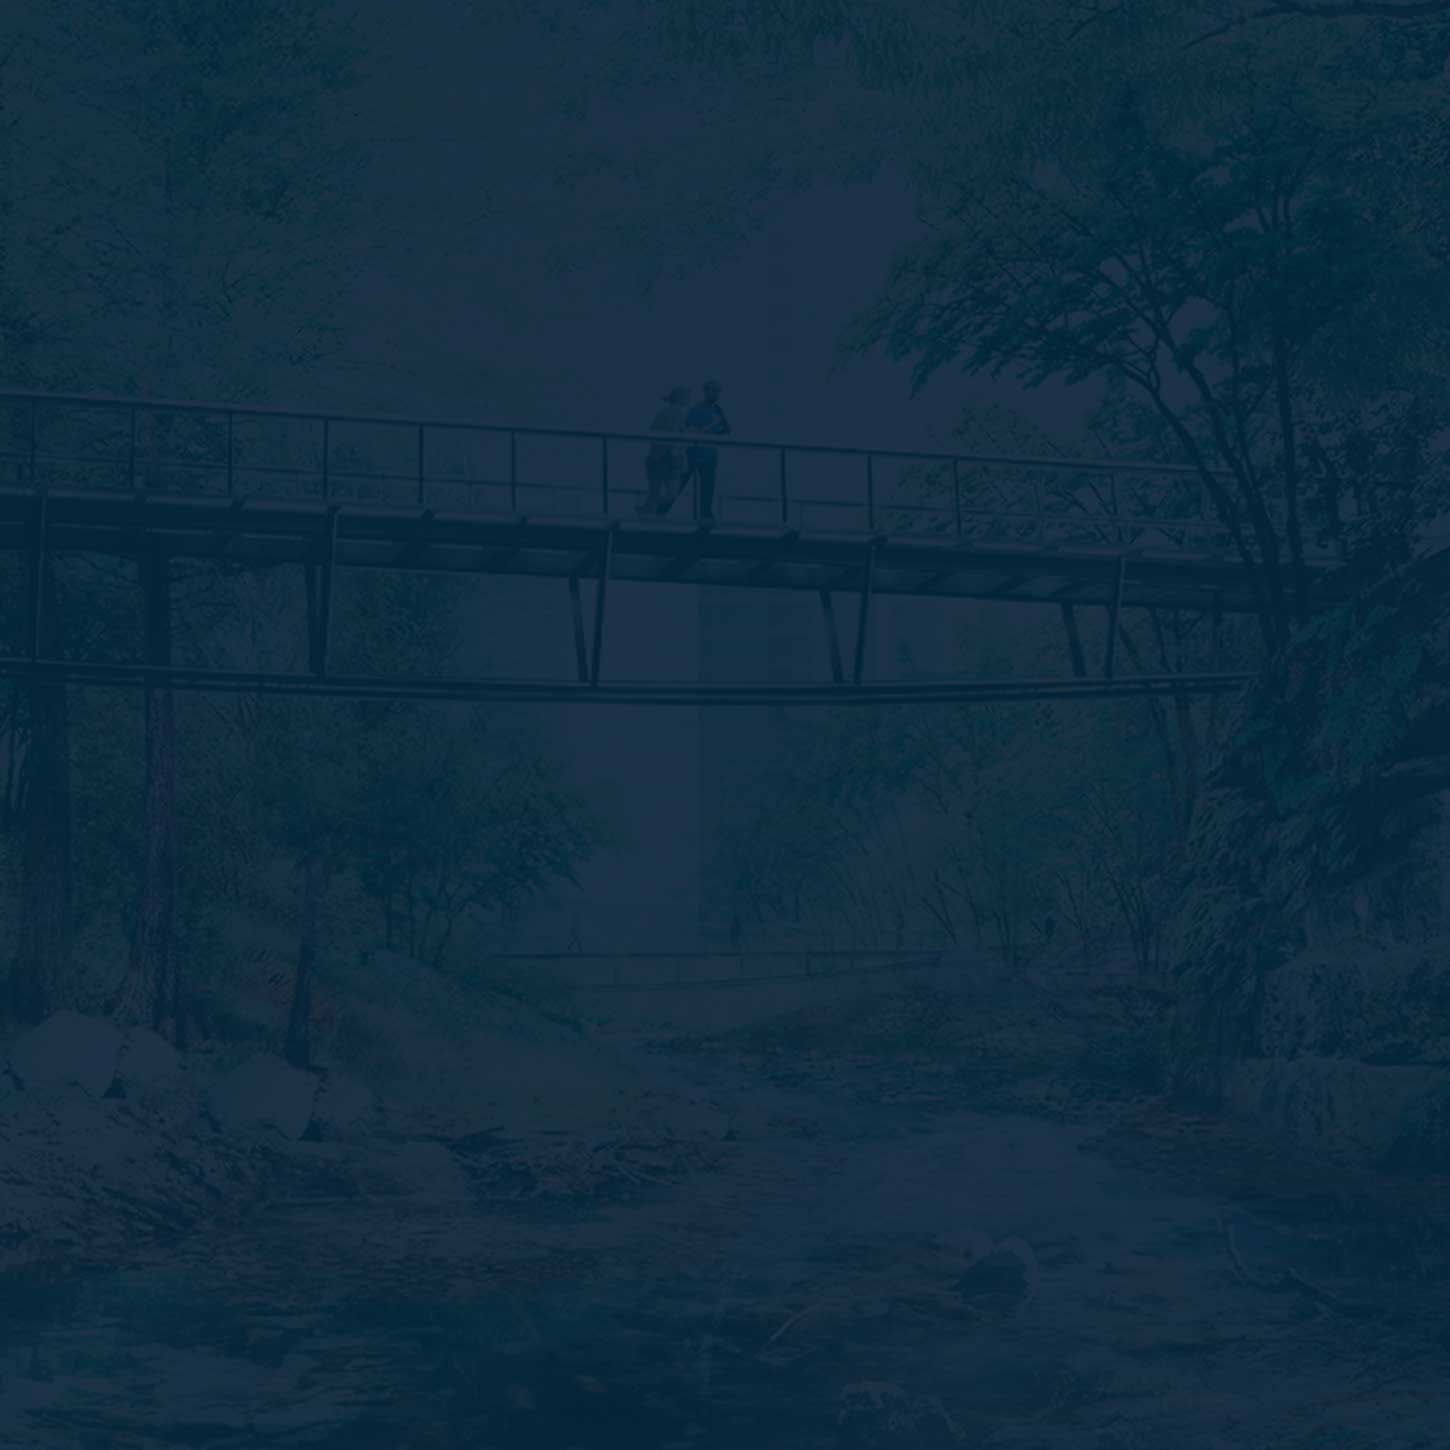 An image of a couple on the Waller Creek path near 70 Rainey with a dark blue tint